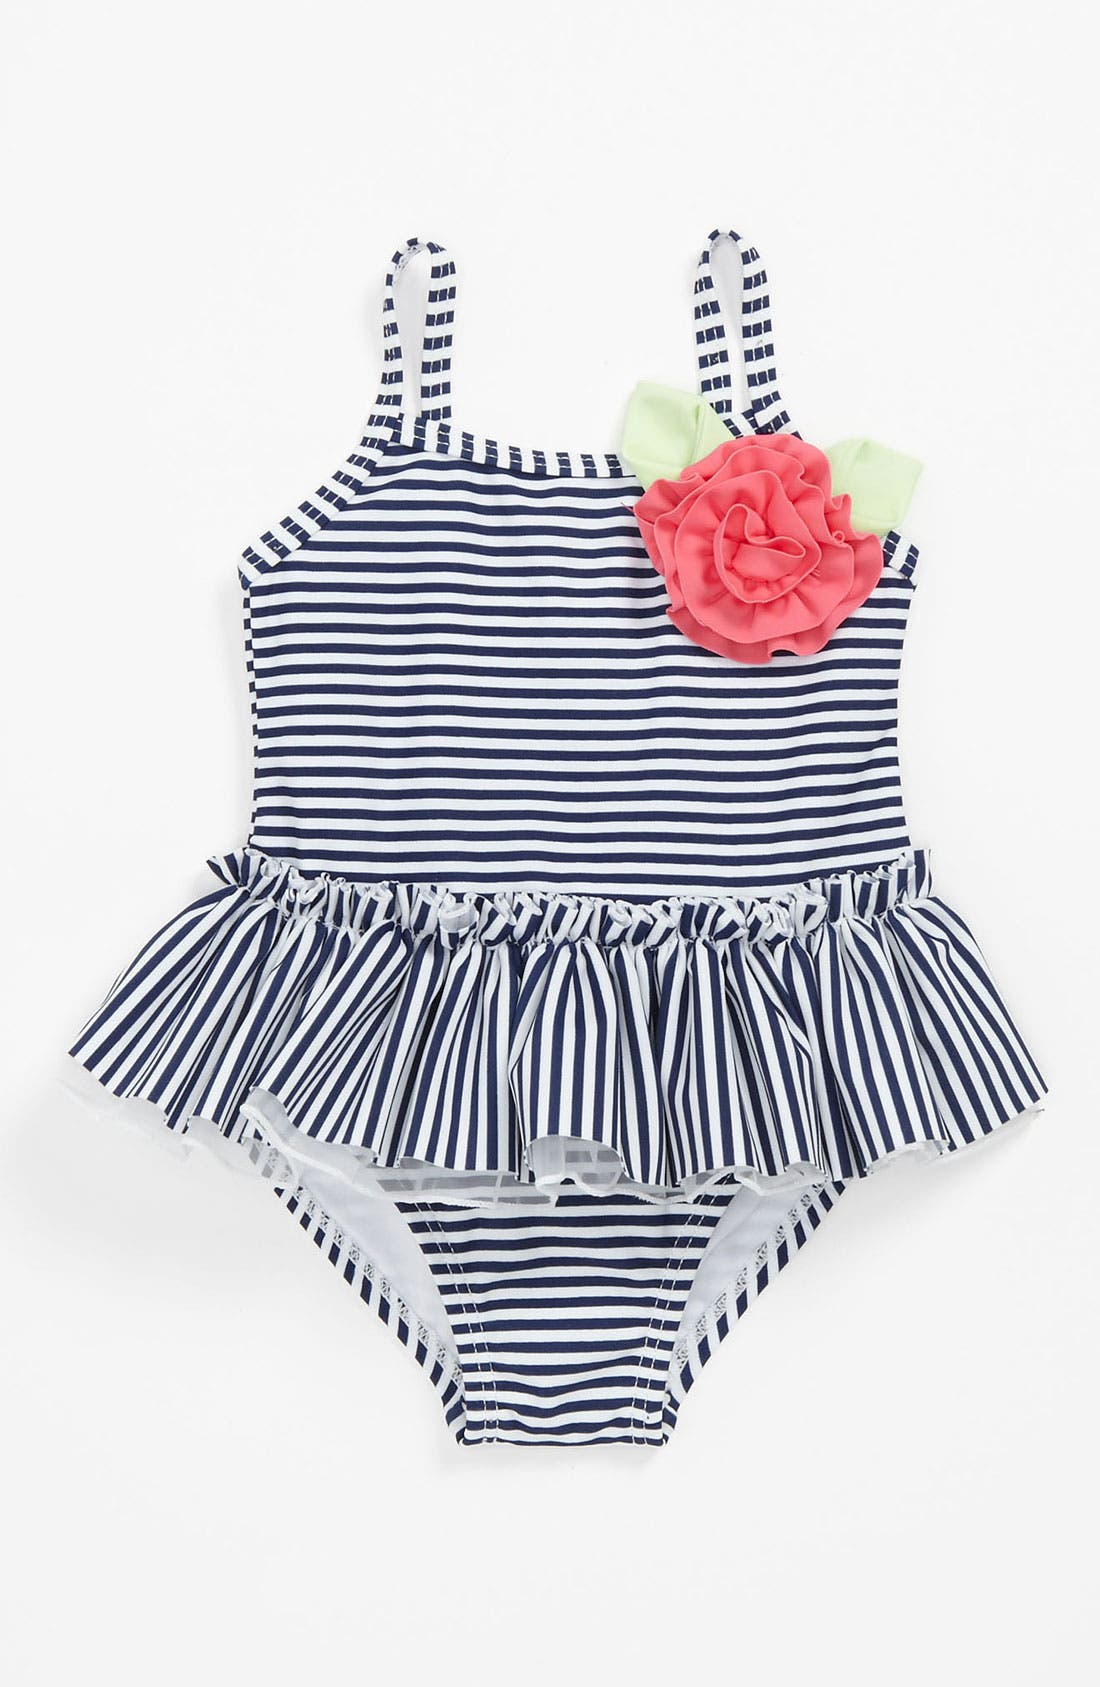 Alternate Image 1 Selected - Little Me Stripe One Piece Swimsuit (Baby)